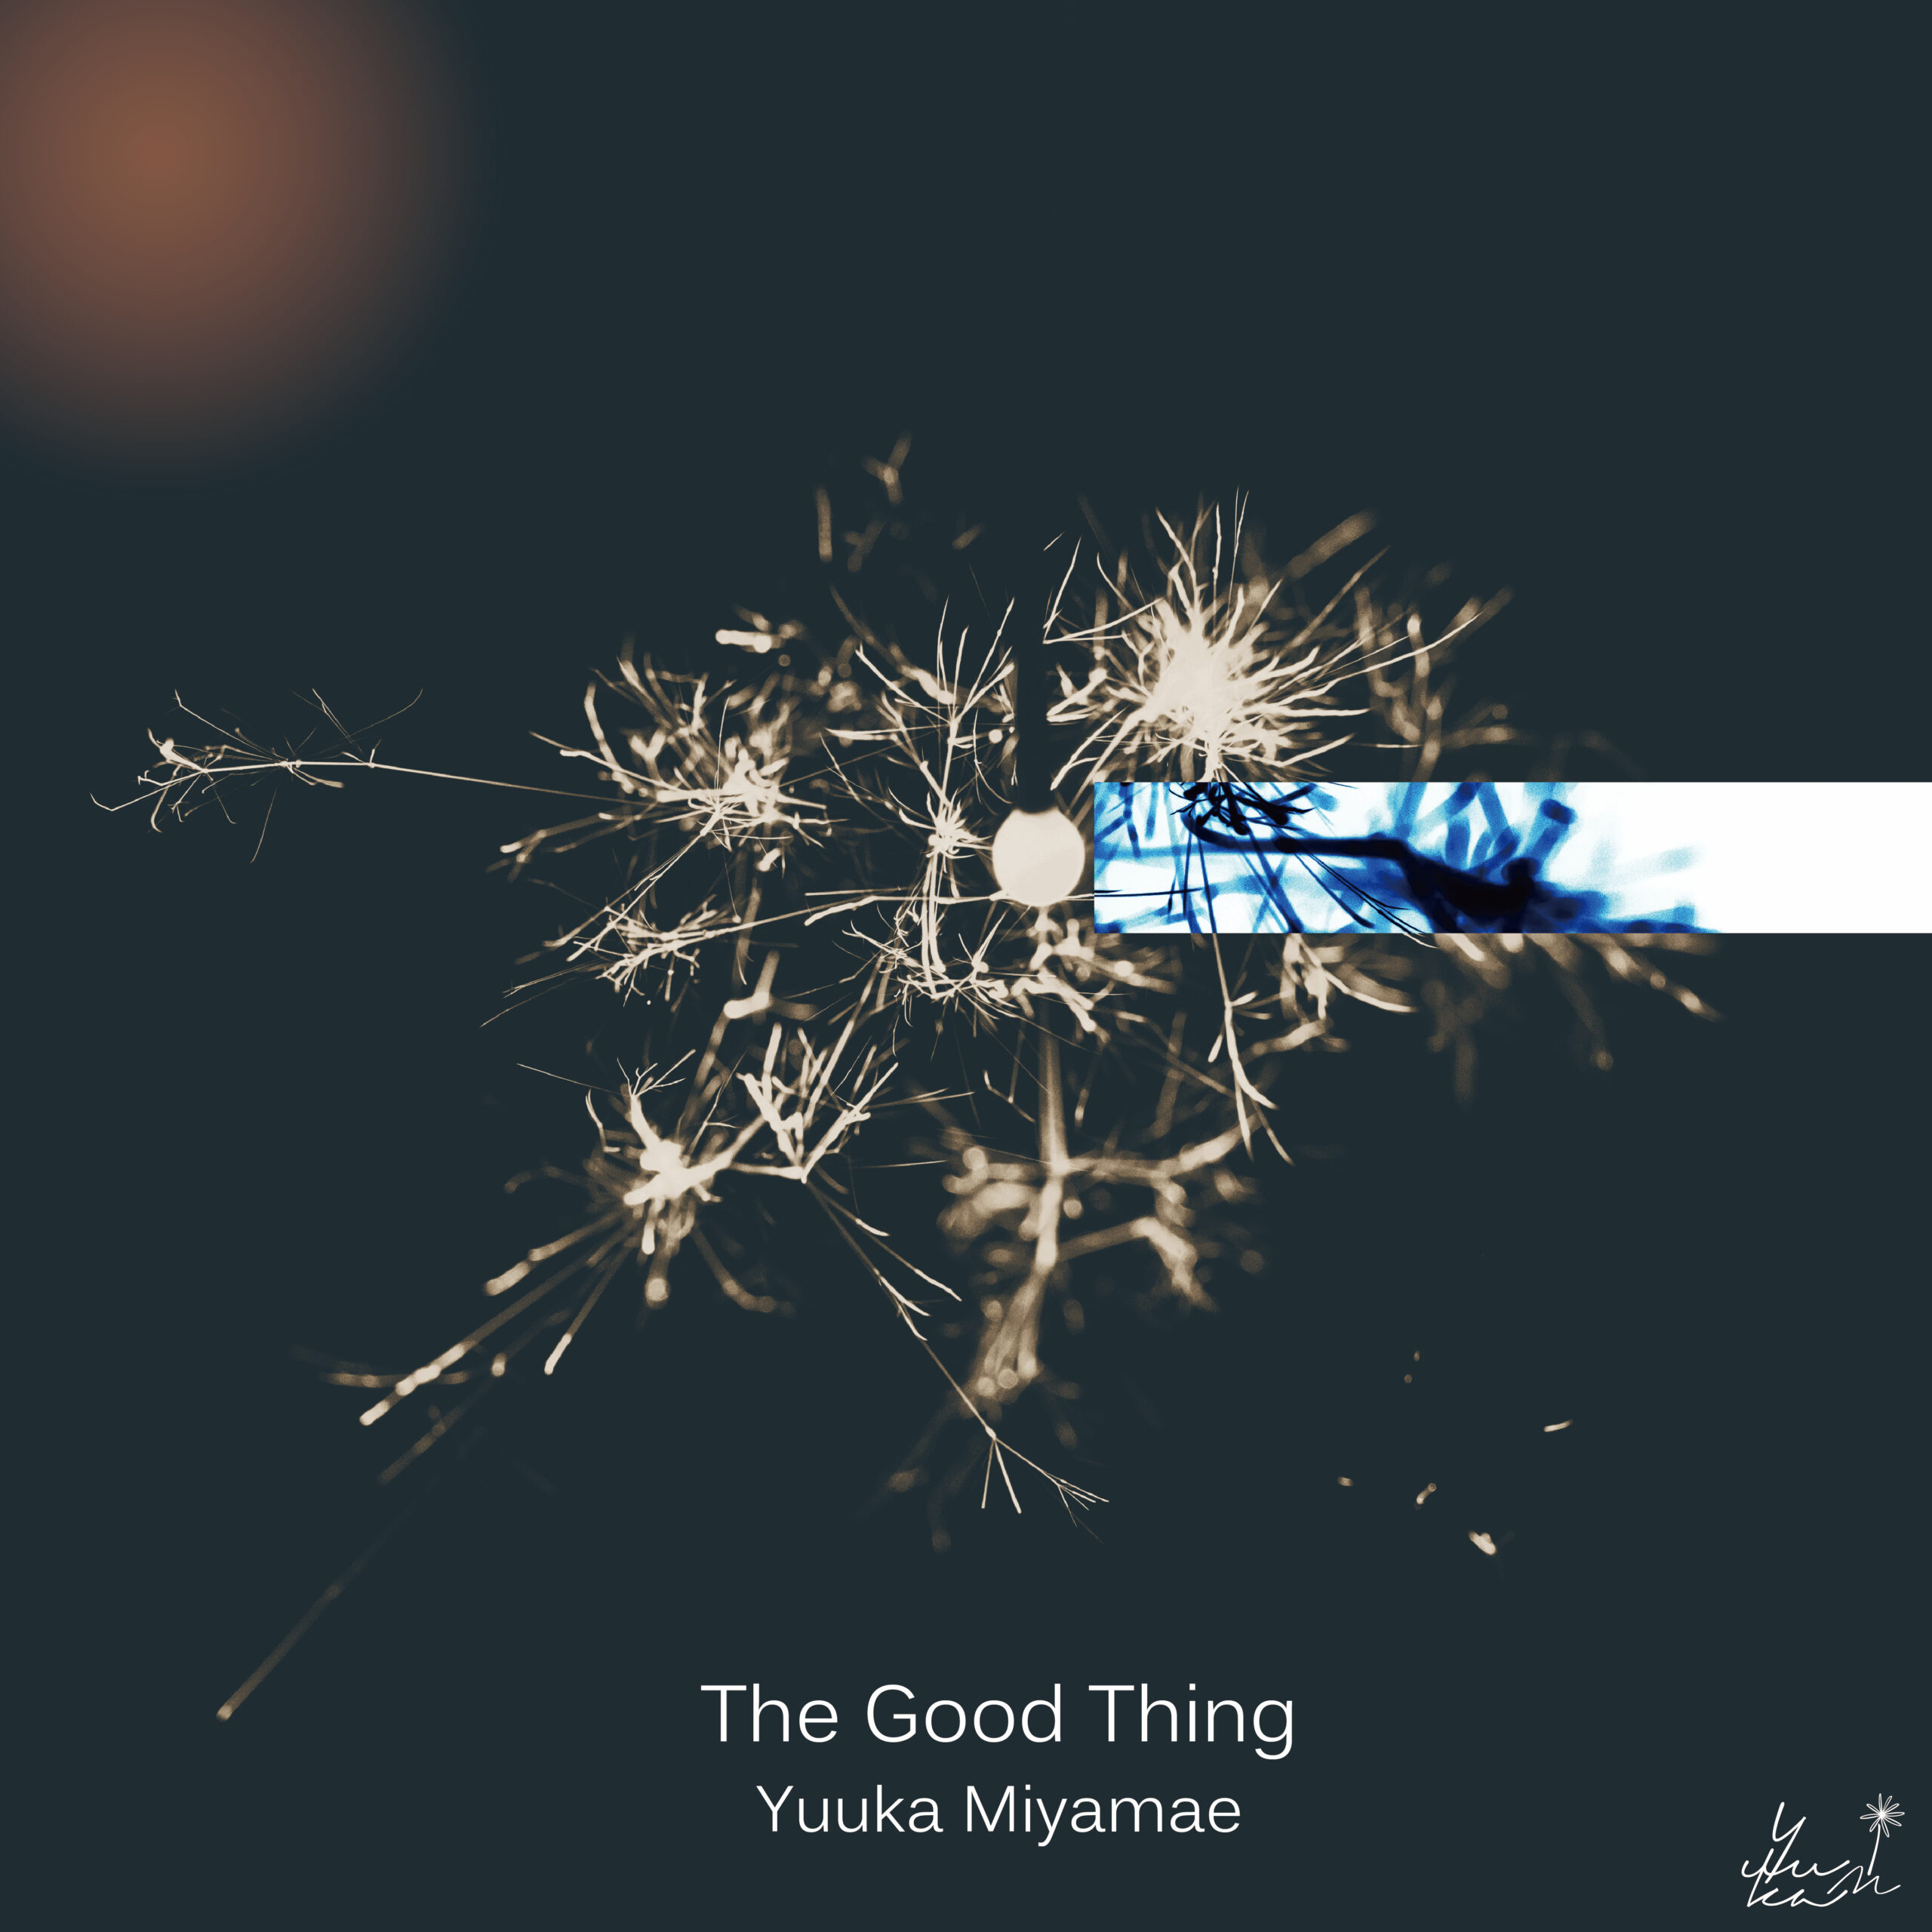 The Good Thing